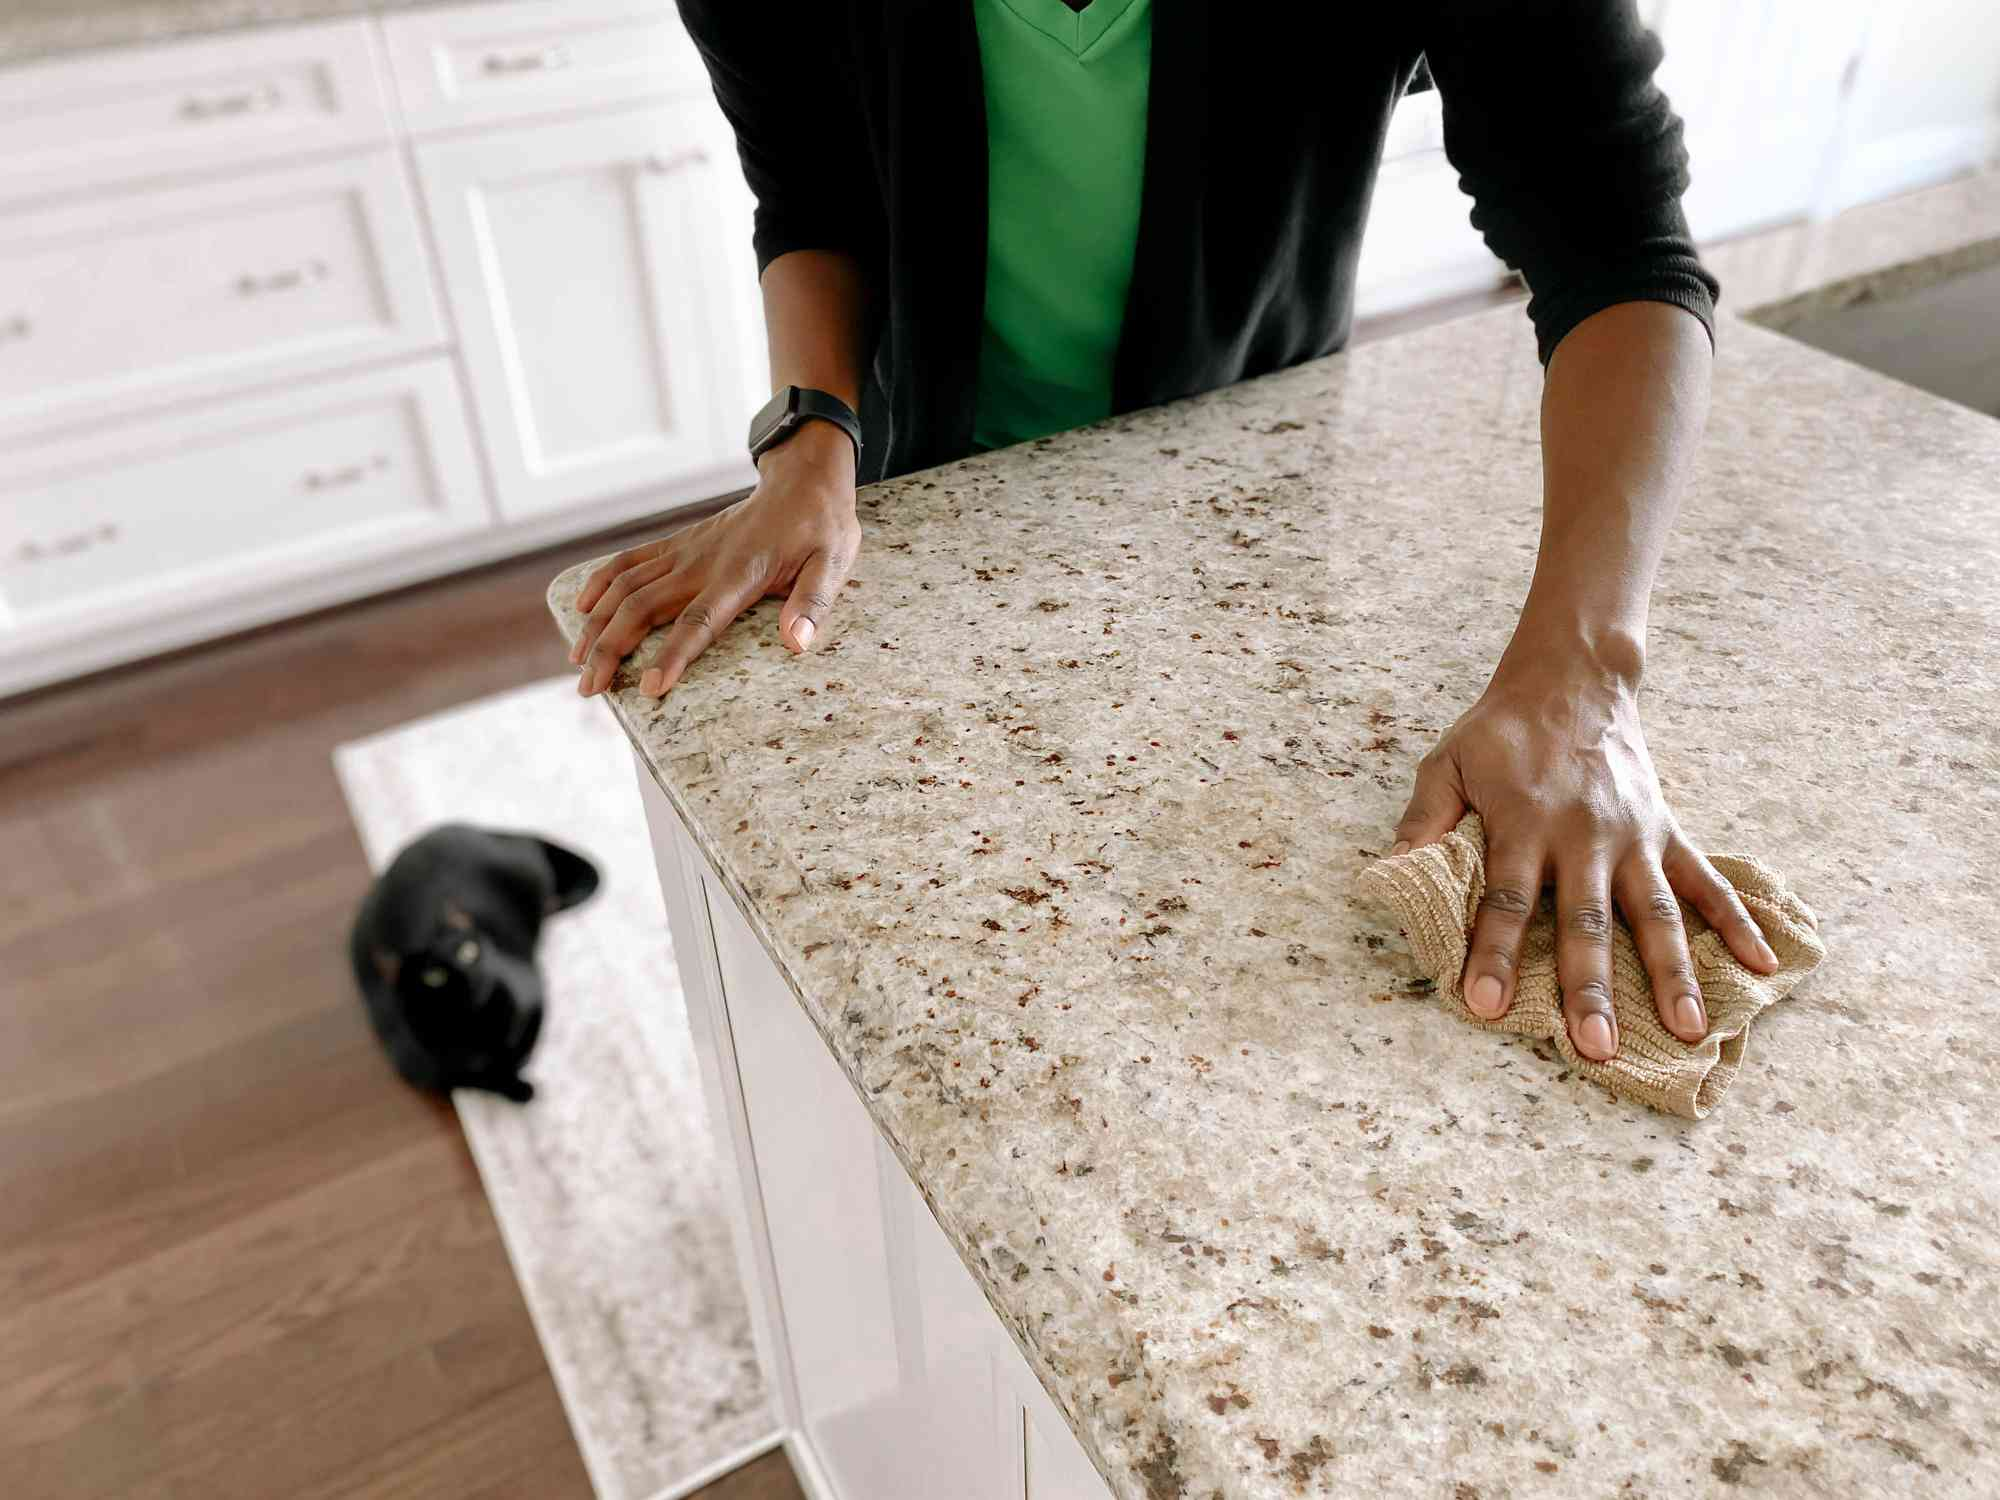 Granite Counter may be sealed with PFAS